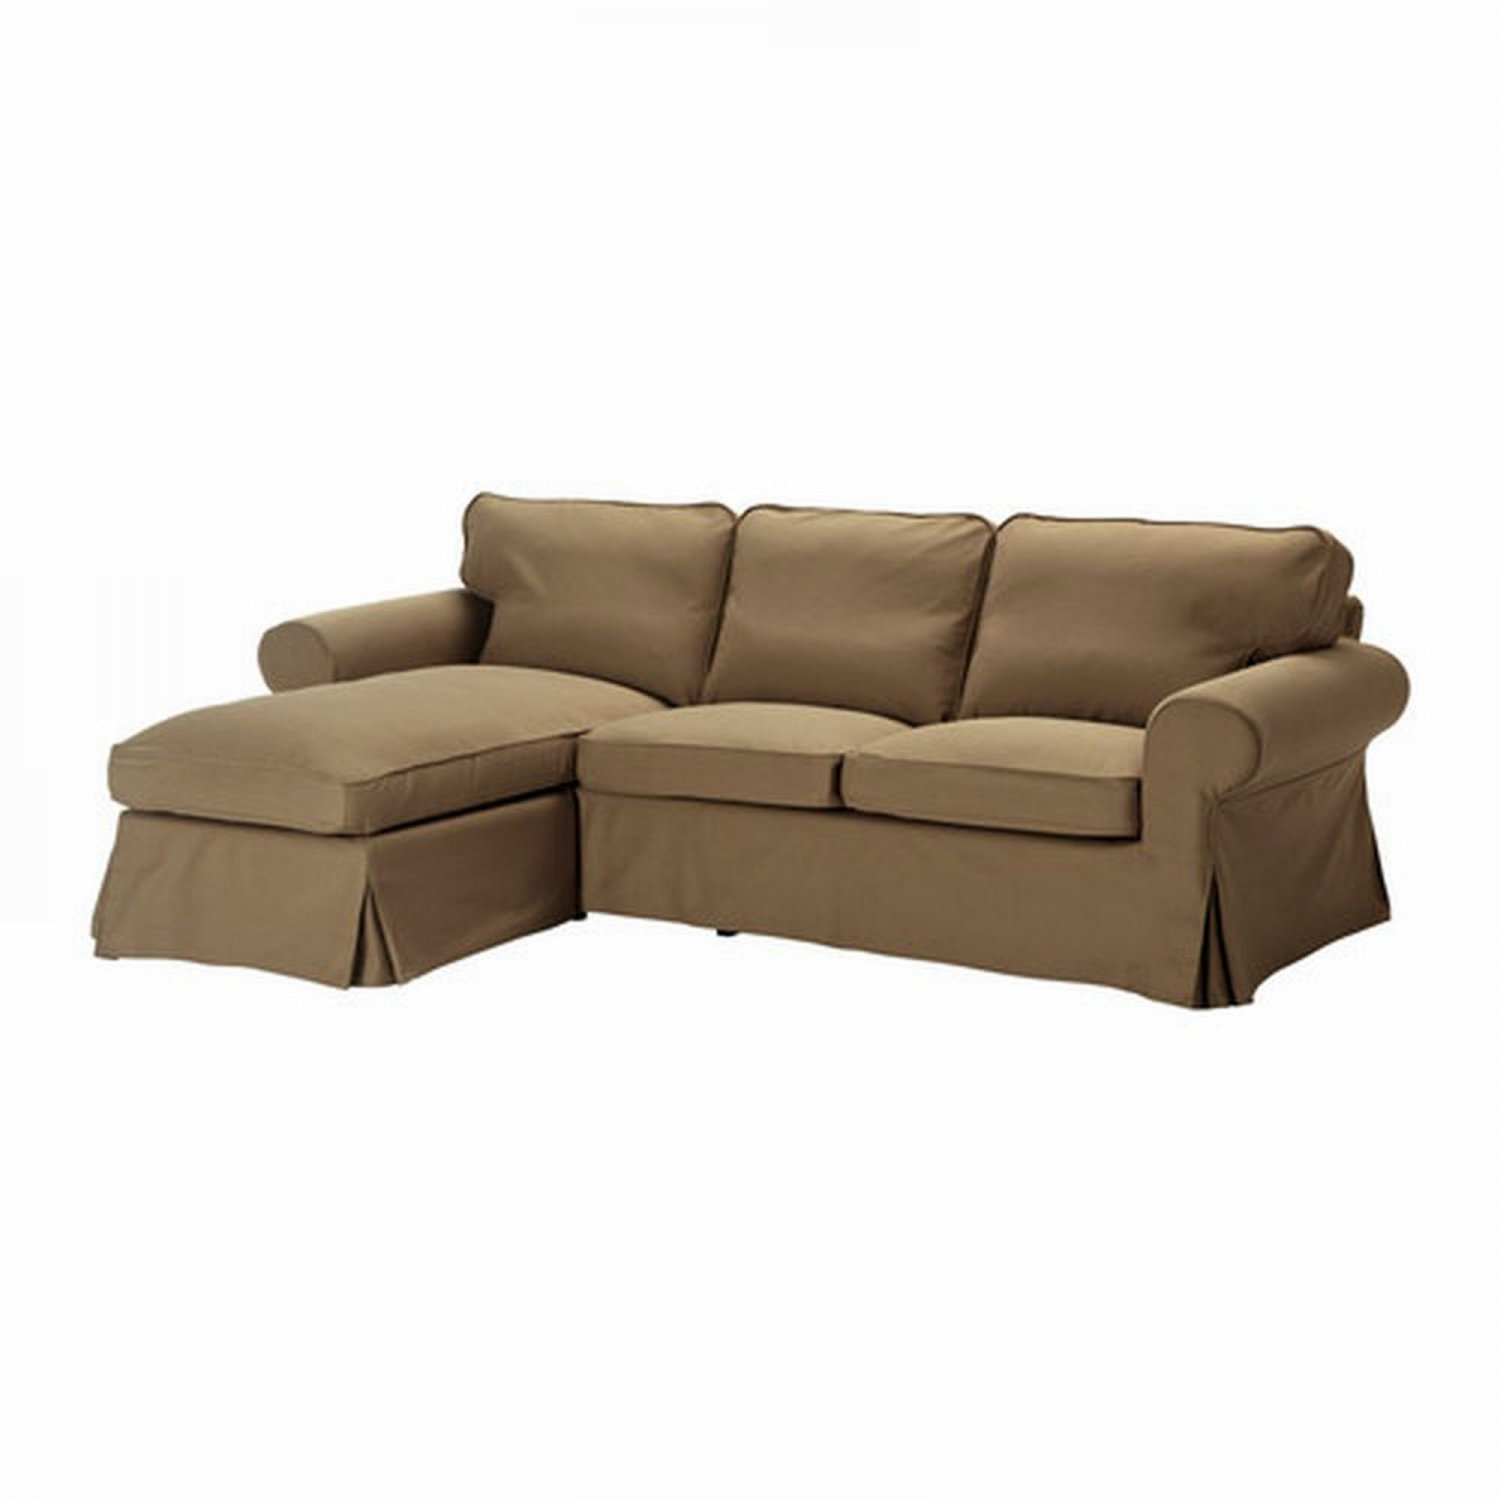 Ikea ektorp 2 seat loveseat sofa with chaise cover for Chaise couch slipcover